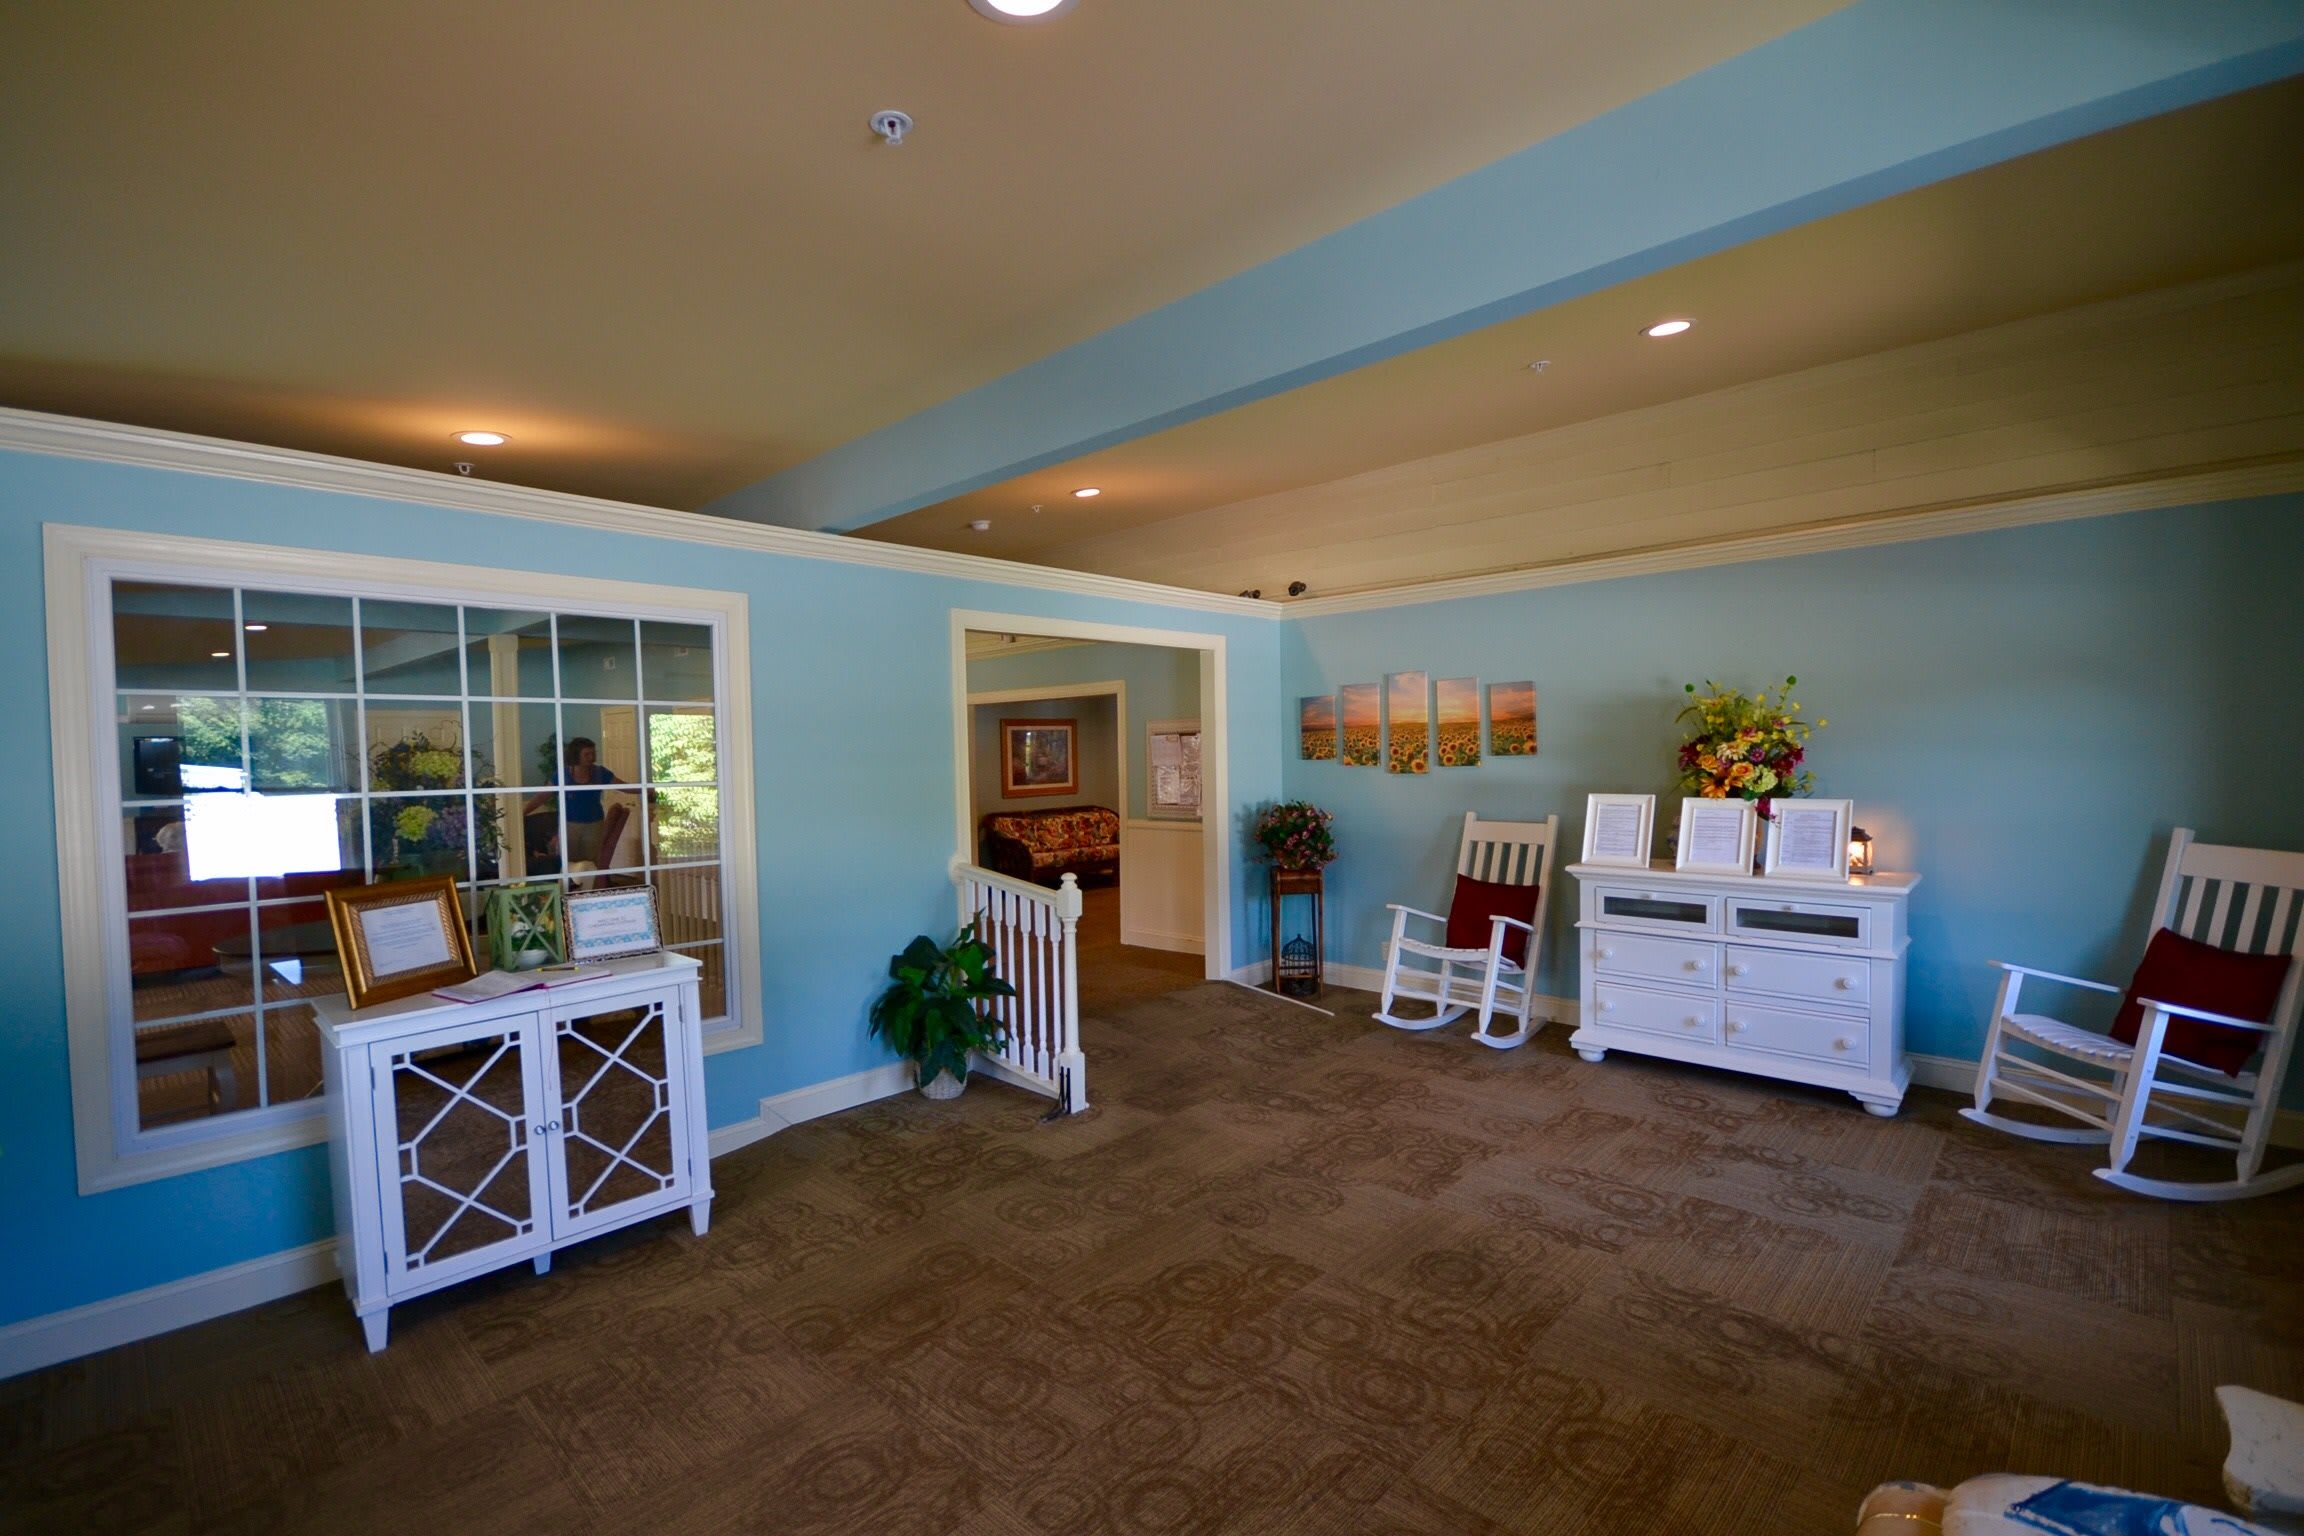 Photo 1 of Chesapeake Cottage Assisted Living